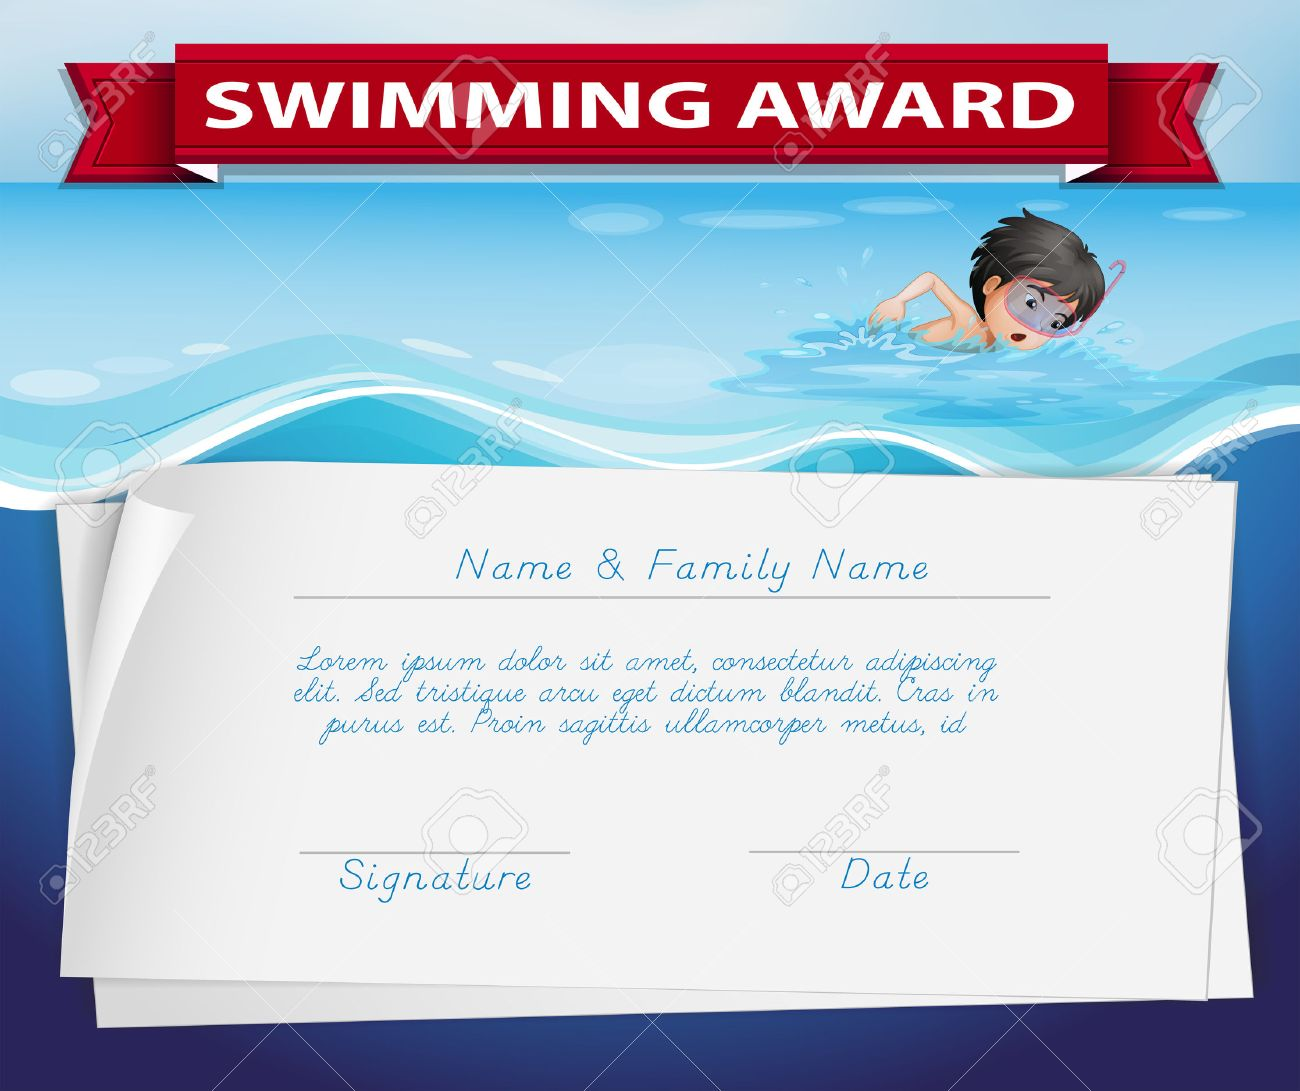 Template of certificate for swimming award illustration royalty free template of certificate for swimming award illustration stock vector 51855921 yelopaper Image collections